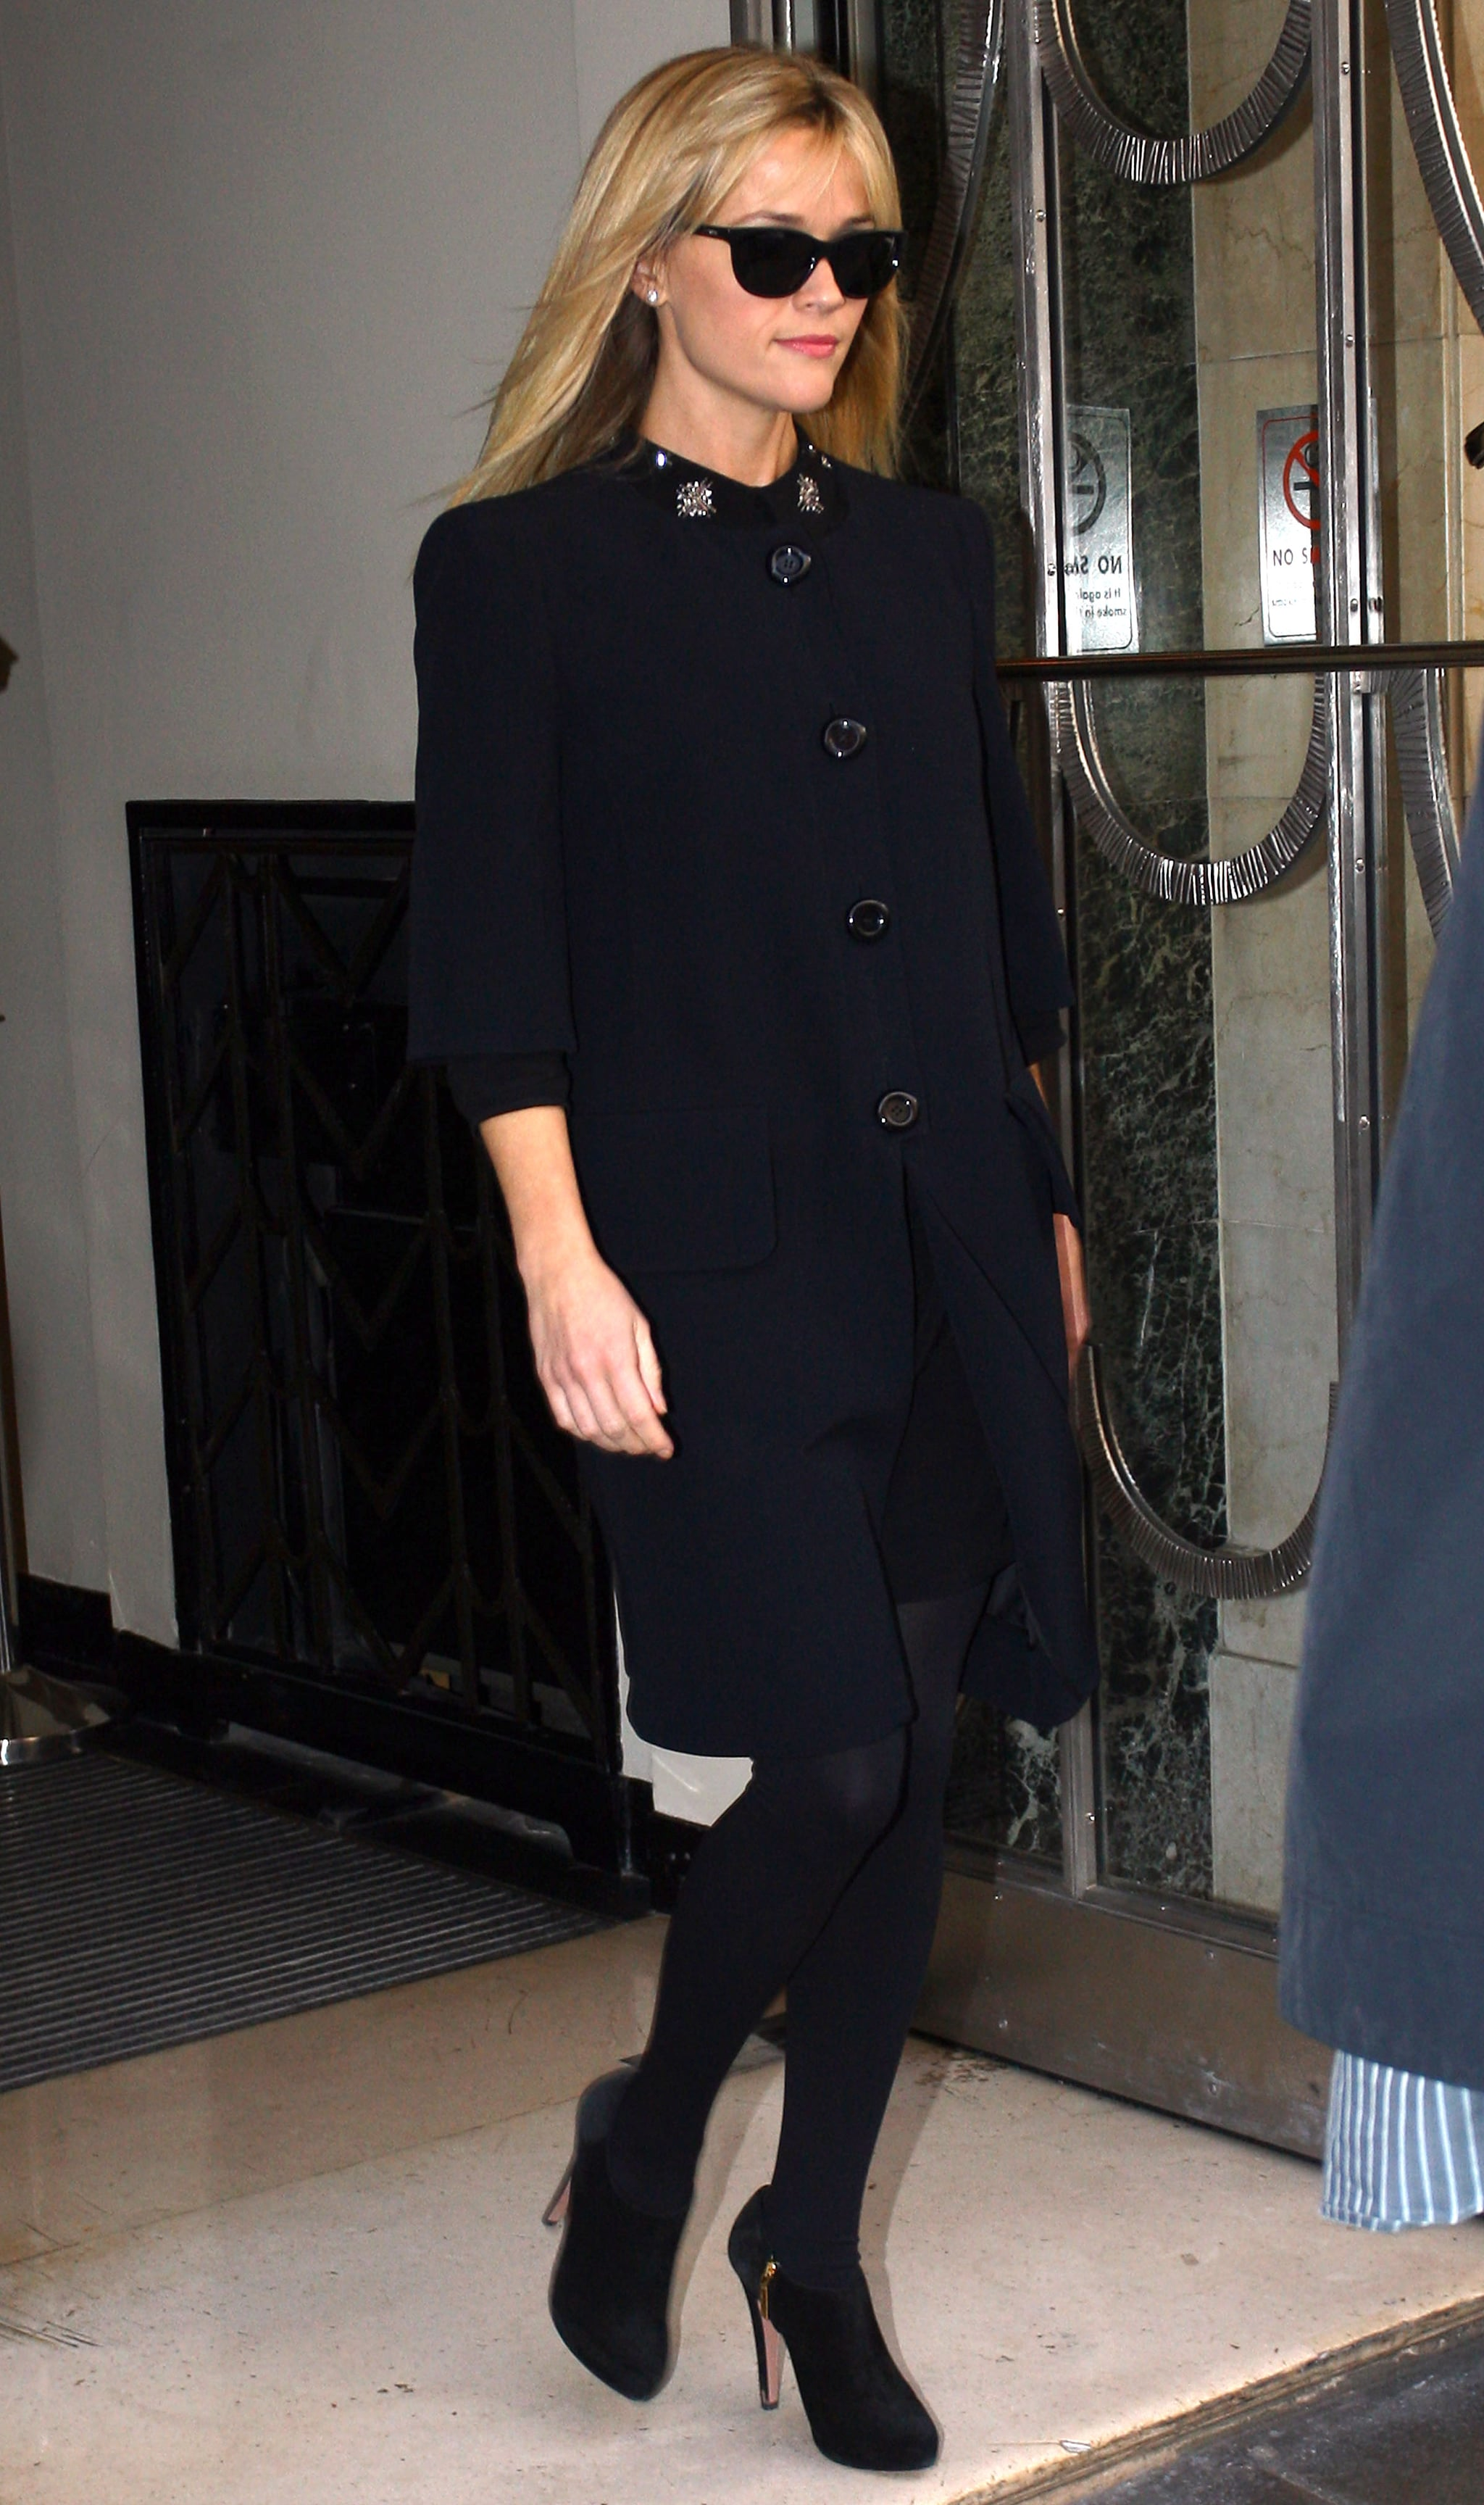 Reese Witherspoon at Claridge's.